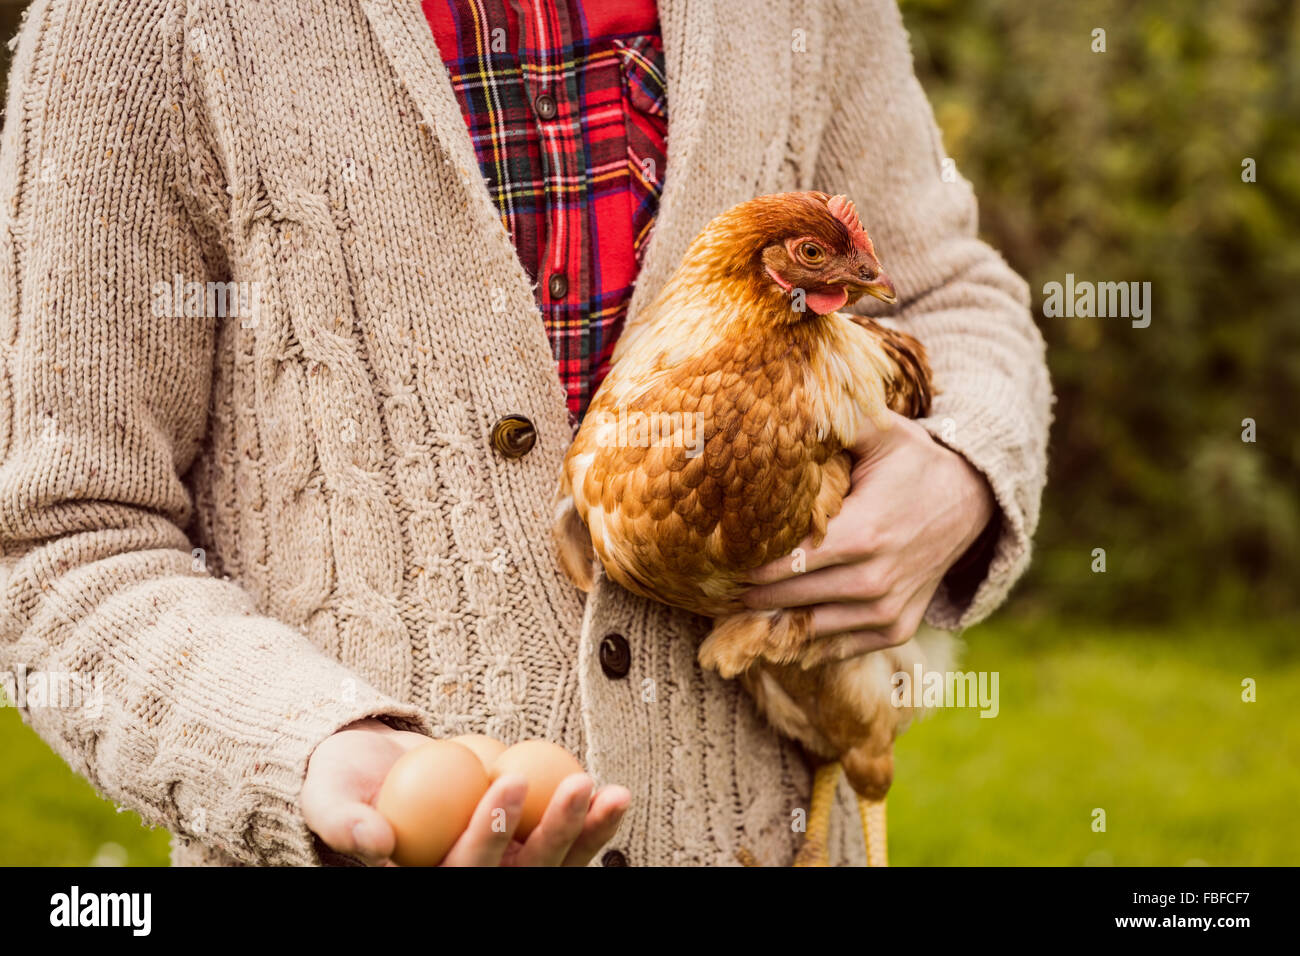 Man holding chicken and egg Photo Stock